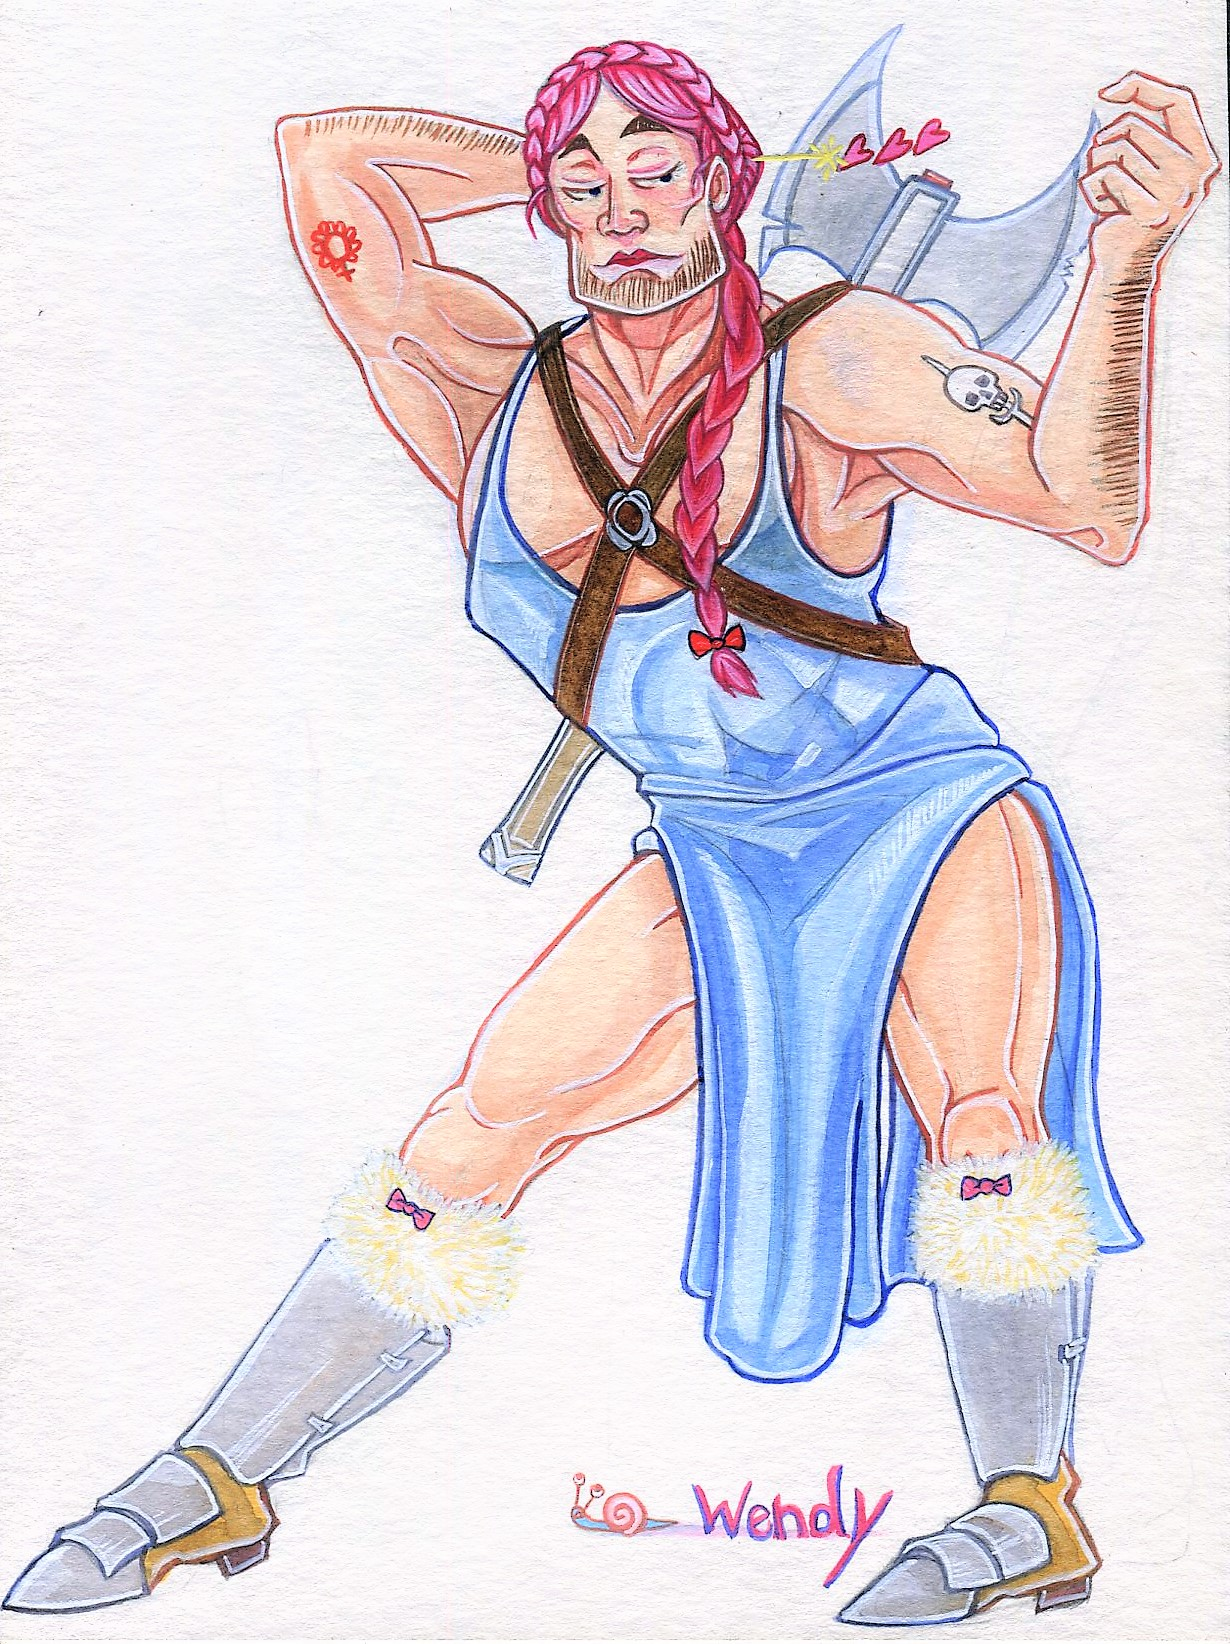 wendy the barbarian by angel-poloo